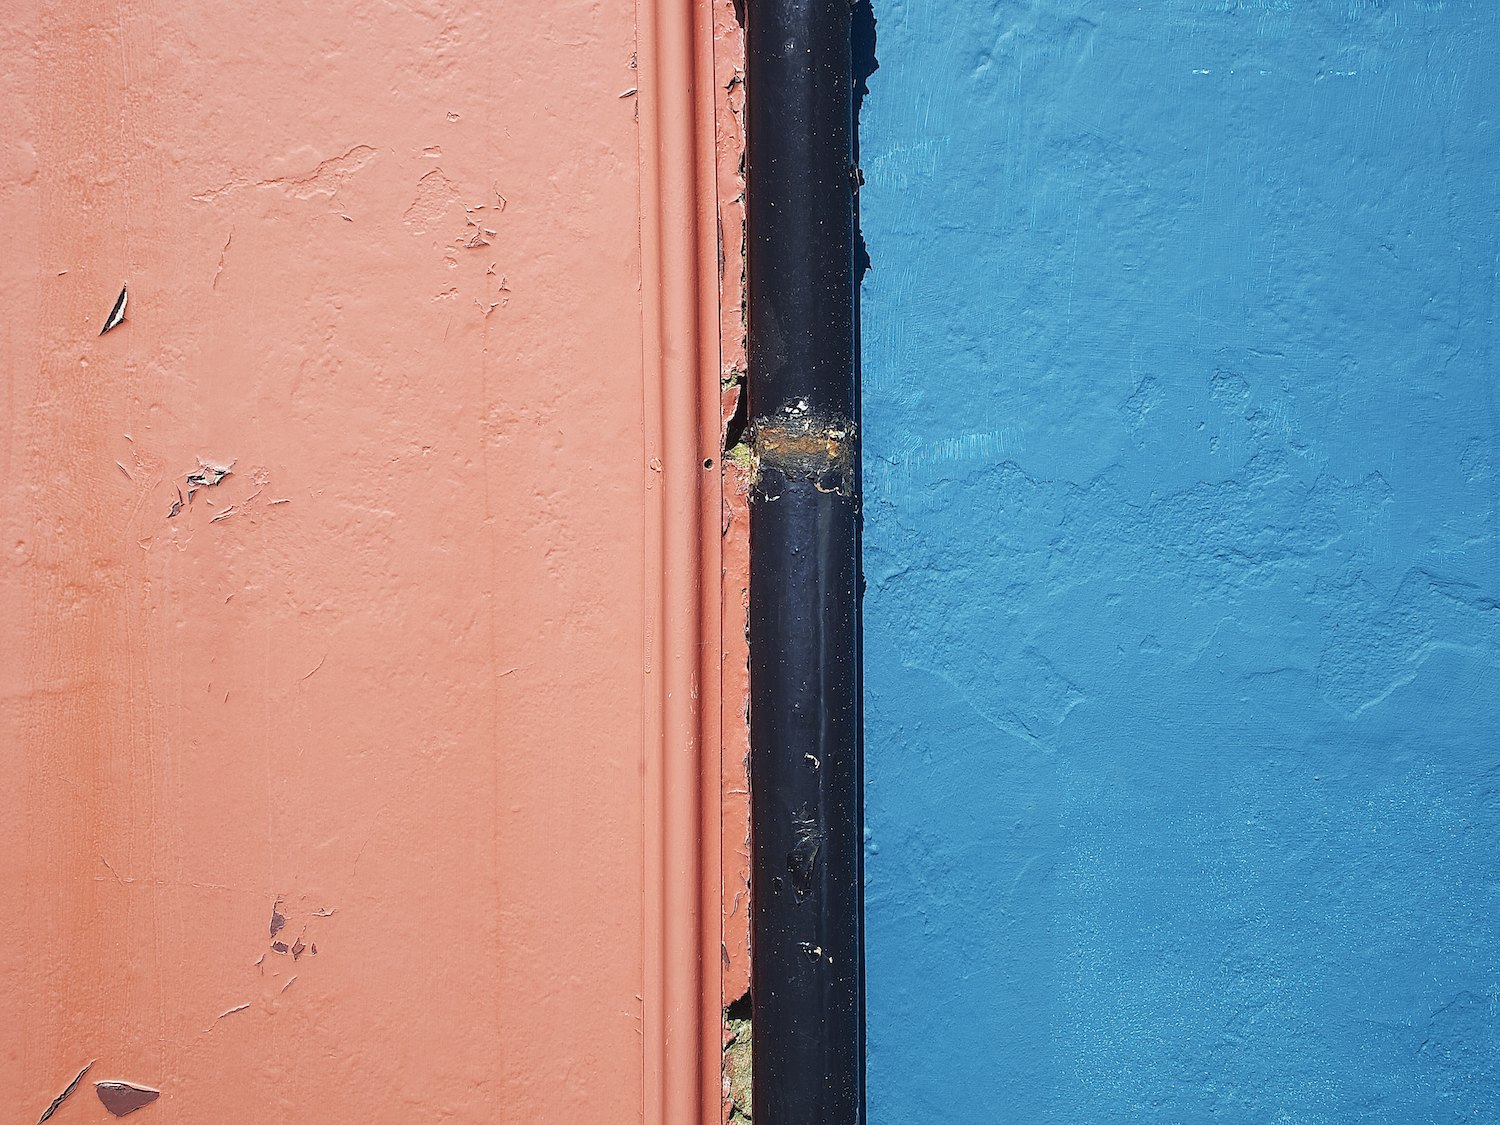 Christopher-Swan-Mull-Tobermory-Colours-abstract 82014-04-18.jpg